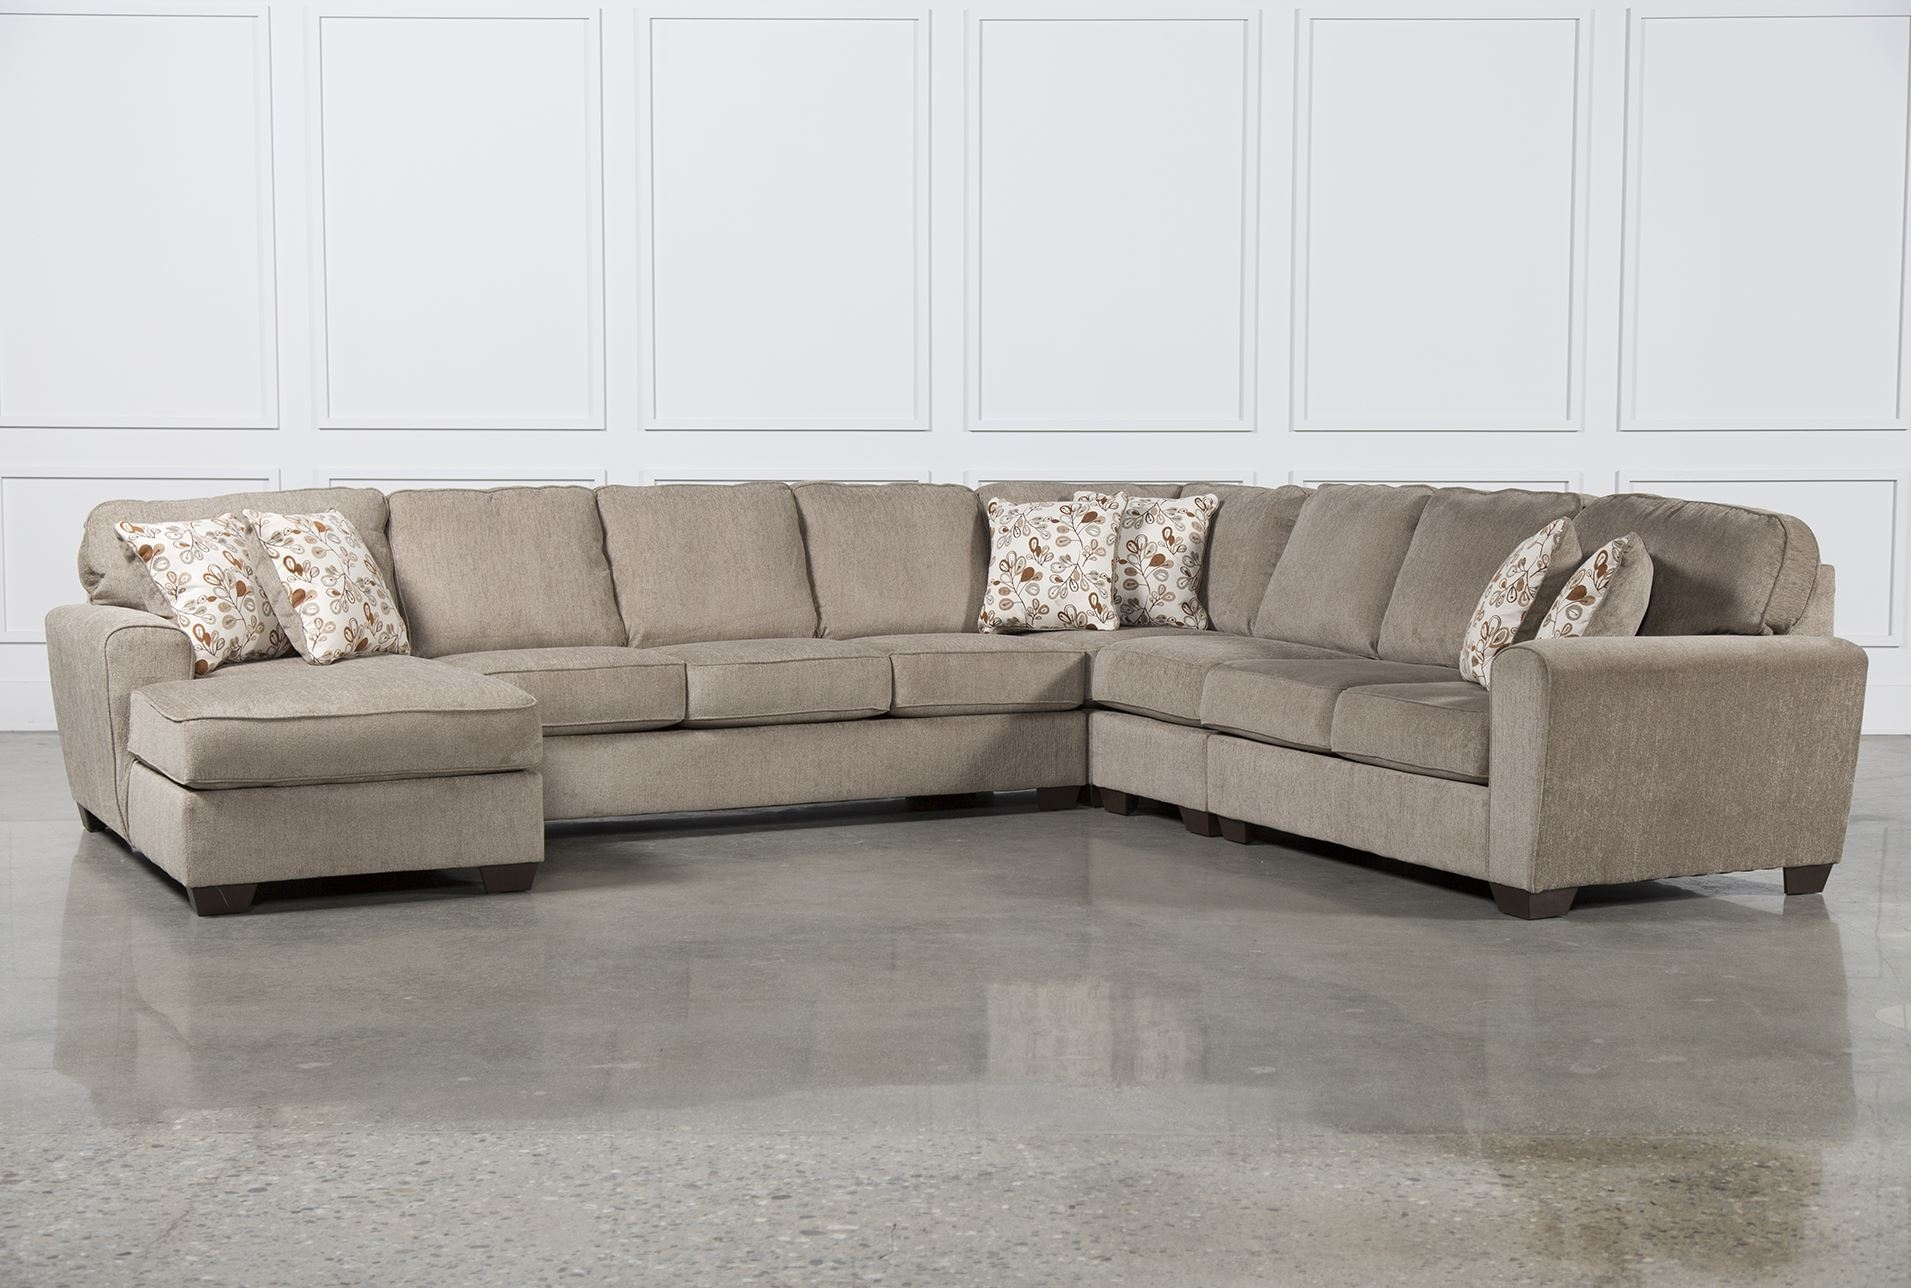 Ideas Of Laf Chaise On Kerri 2 Piece Sectional W Laf Chaise Living within Kerri 2 Piece Sectionals With Laf Chaise (Image 12 of 30)